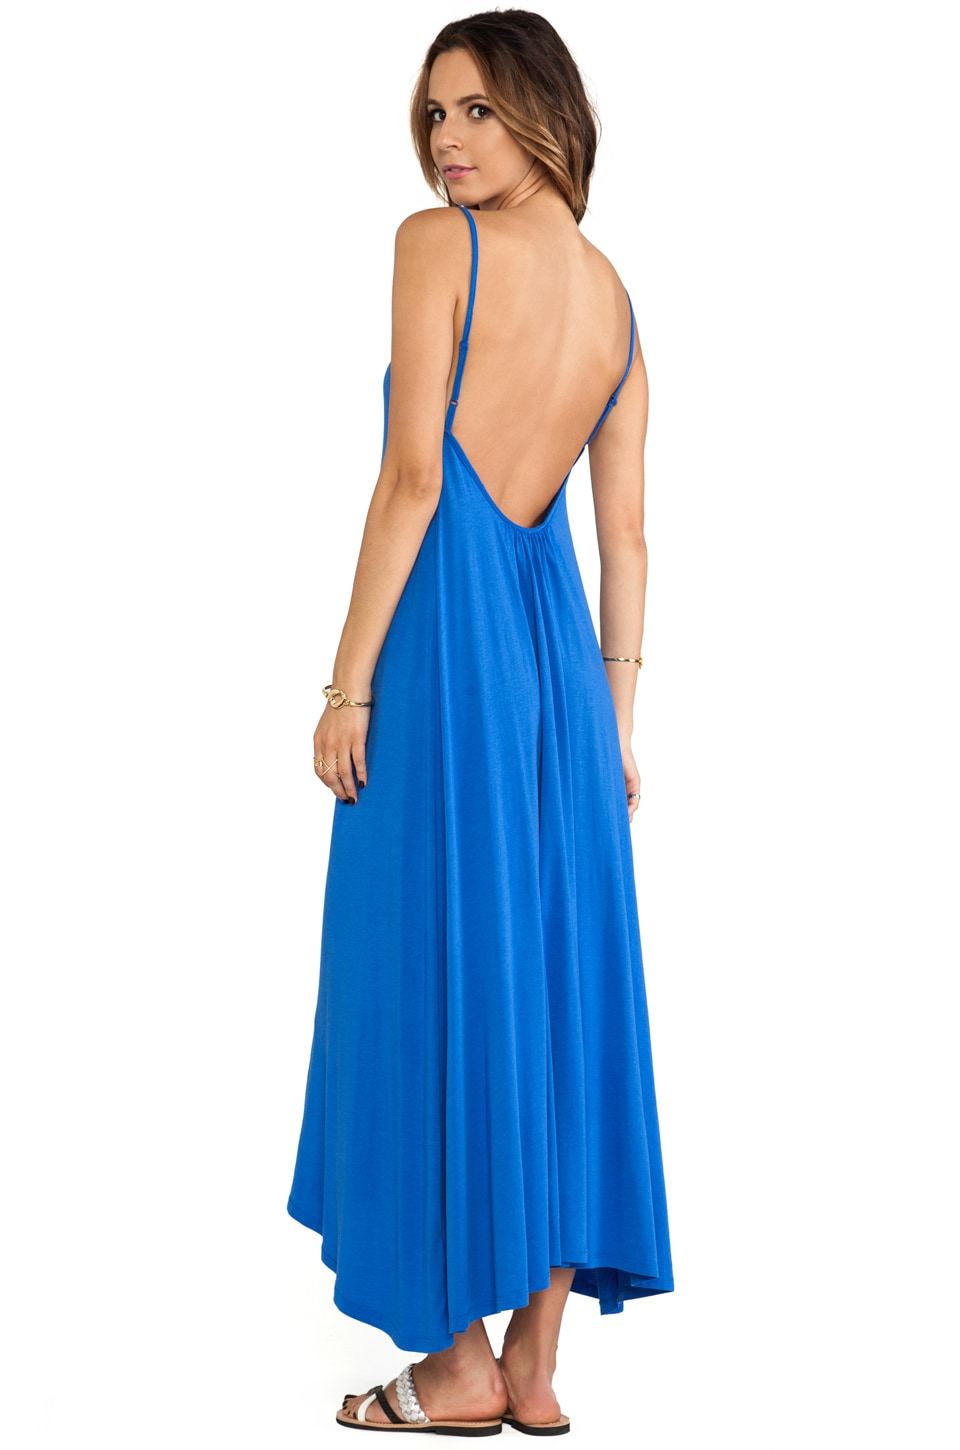 Bobi Low Back Maxi Dress in Nitrogen